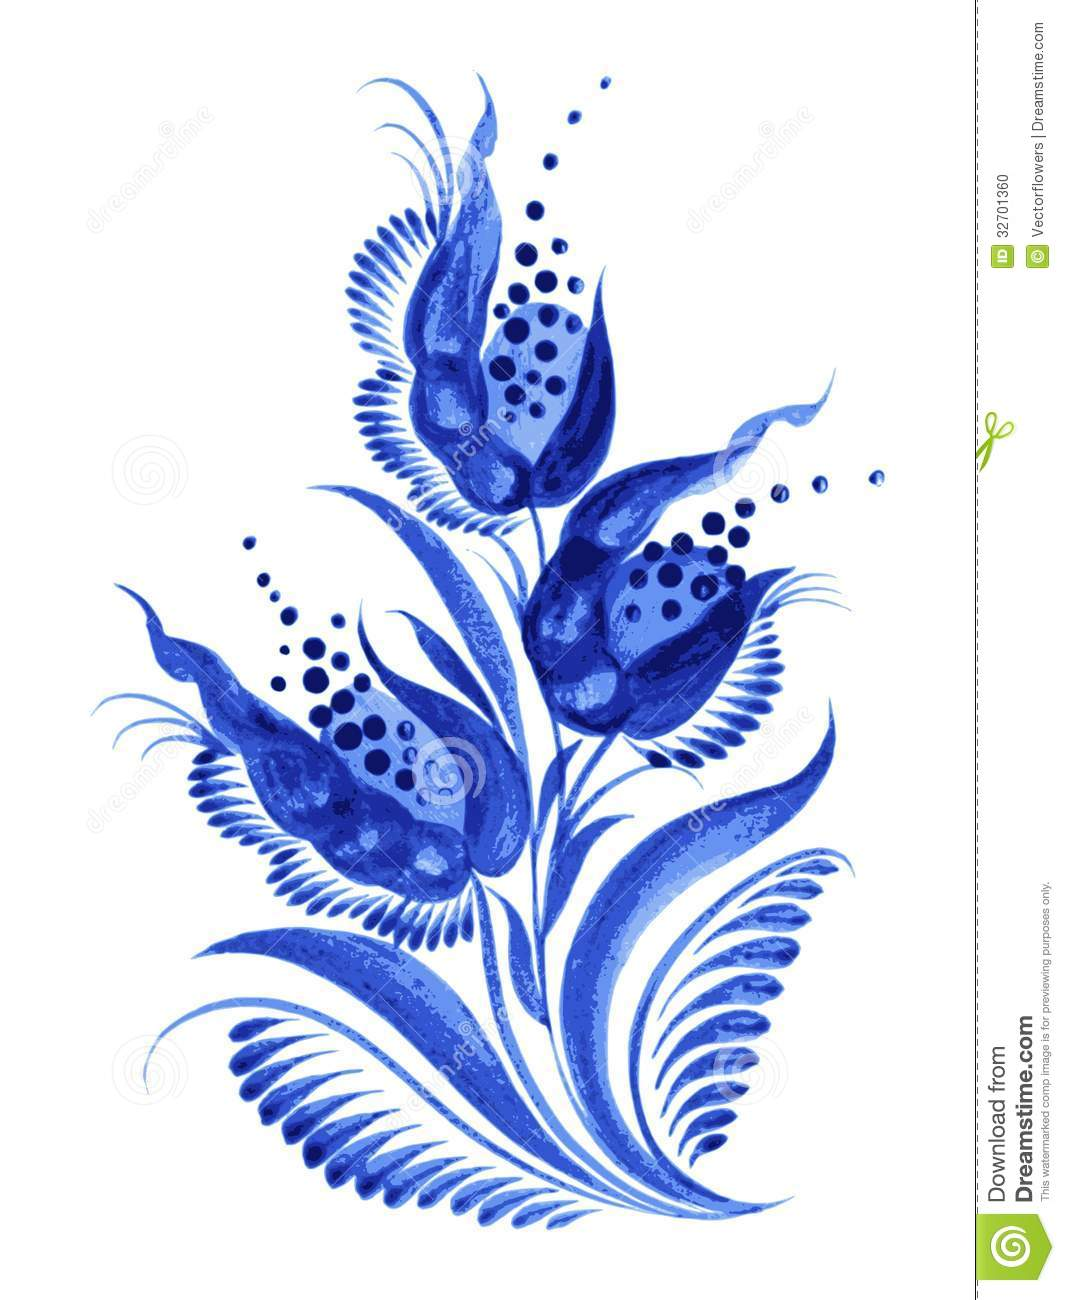 Blue Flower Composition Stock Vector Illustration Of Cartoon 32701360